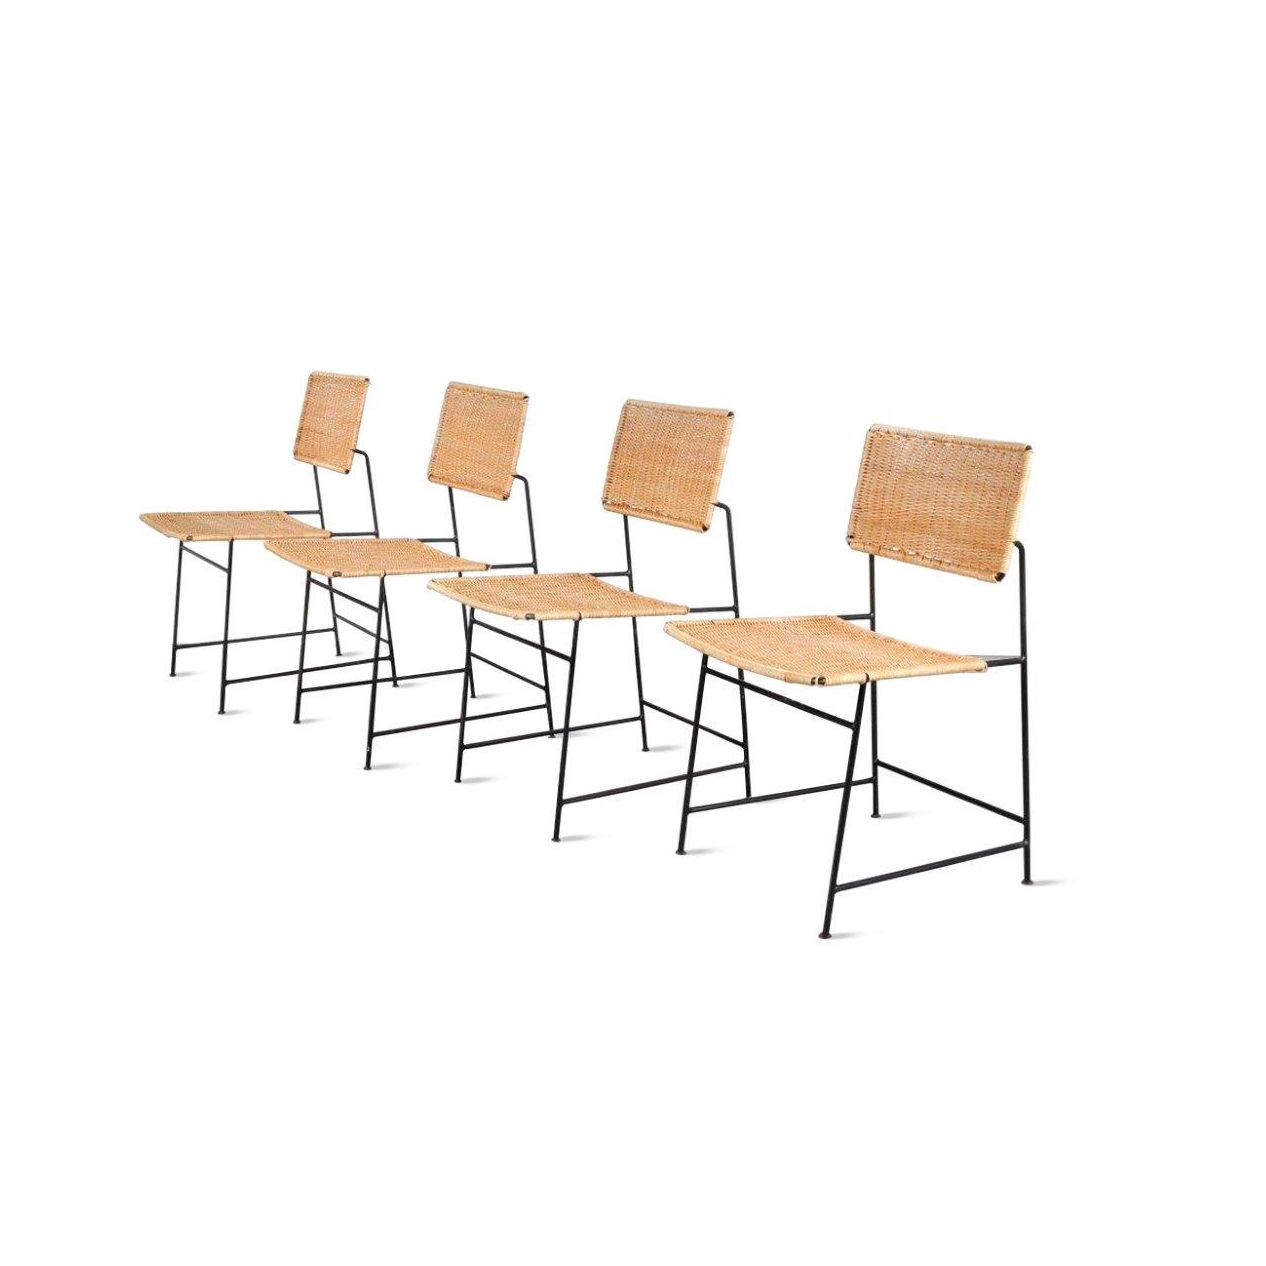 "m23305 Set of Four Herta-Maria Witzemann ""SW88"" Chairs for Wilde + Spieth, Germany 1954"